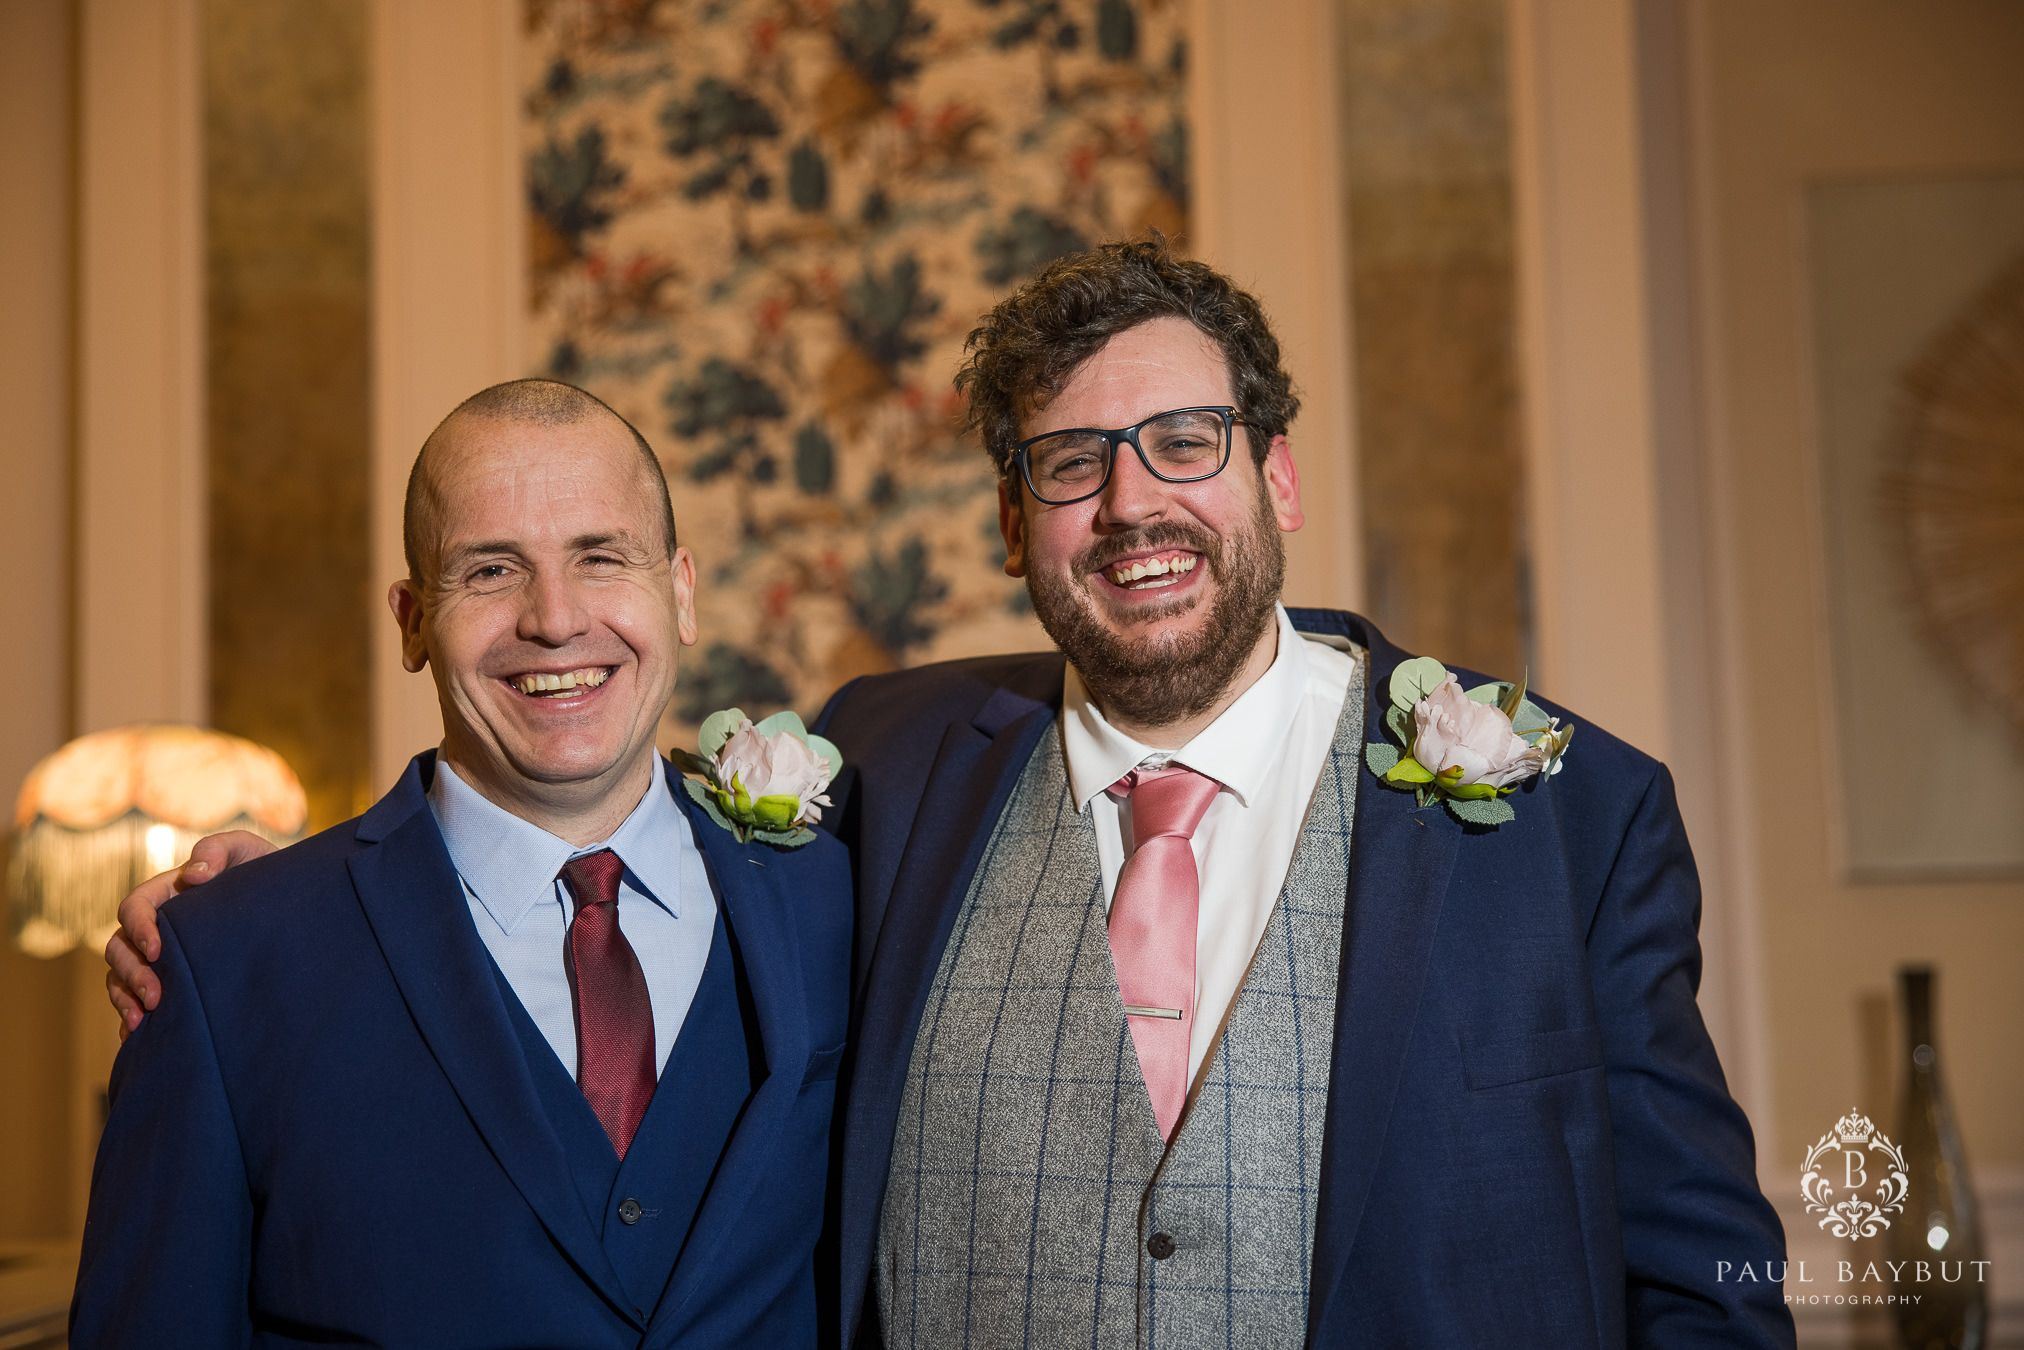 Groom and bestman Family wedding photos at Mottram Hall Winter wedding